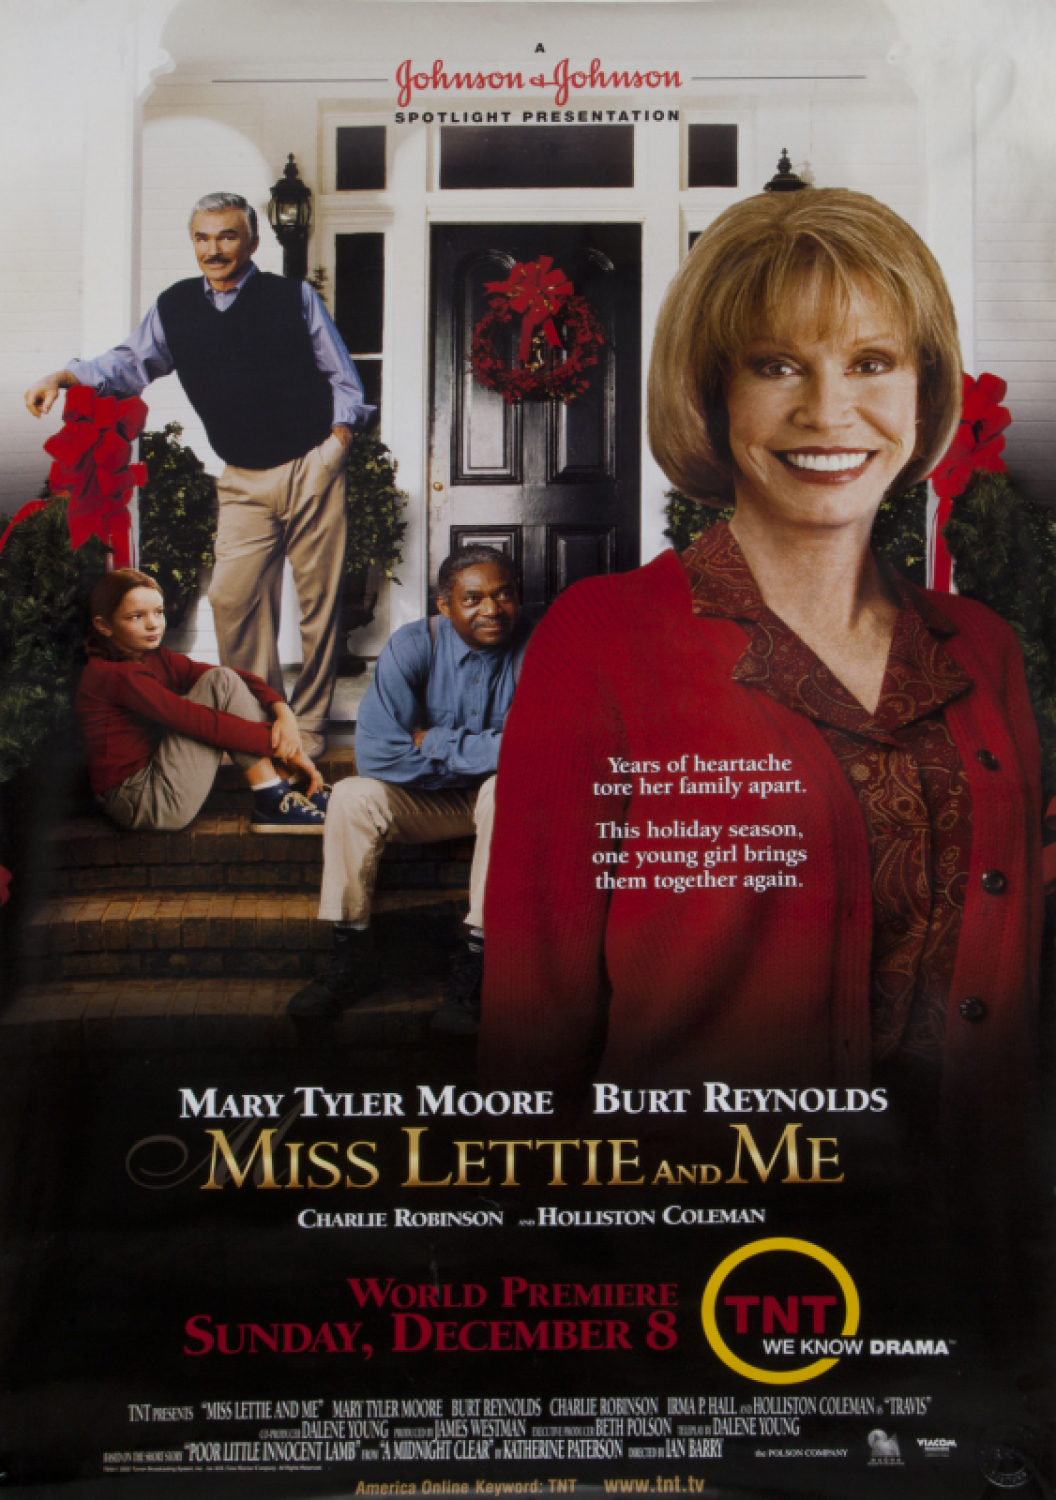 MISS LETTIE AND ME FILM POSTER - Price Estimate: $25 - $50